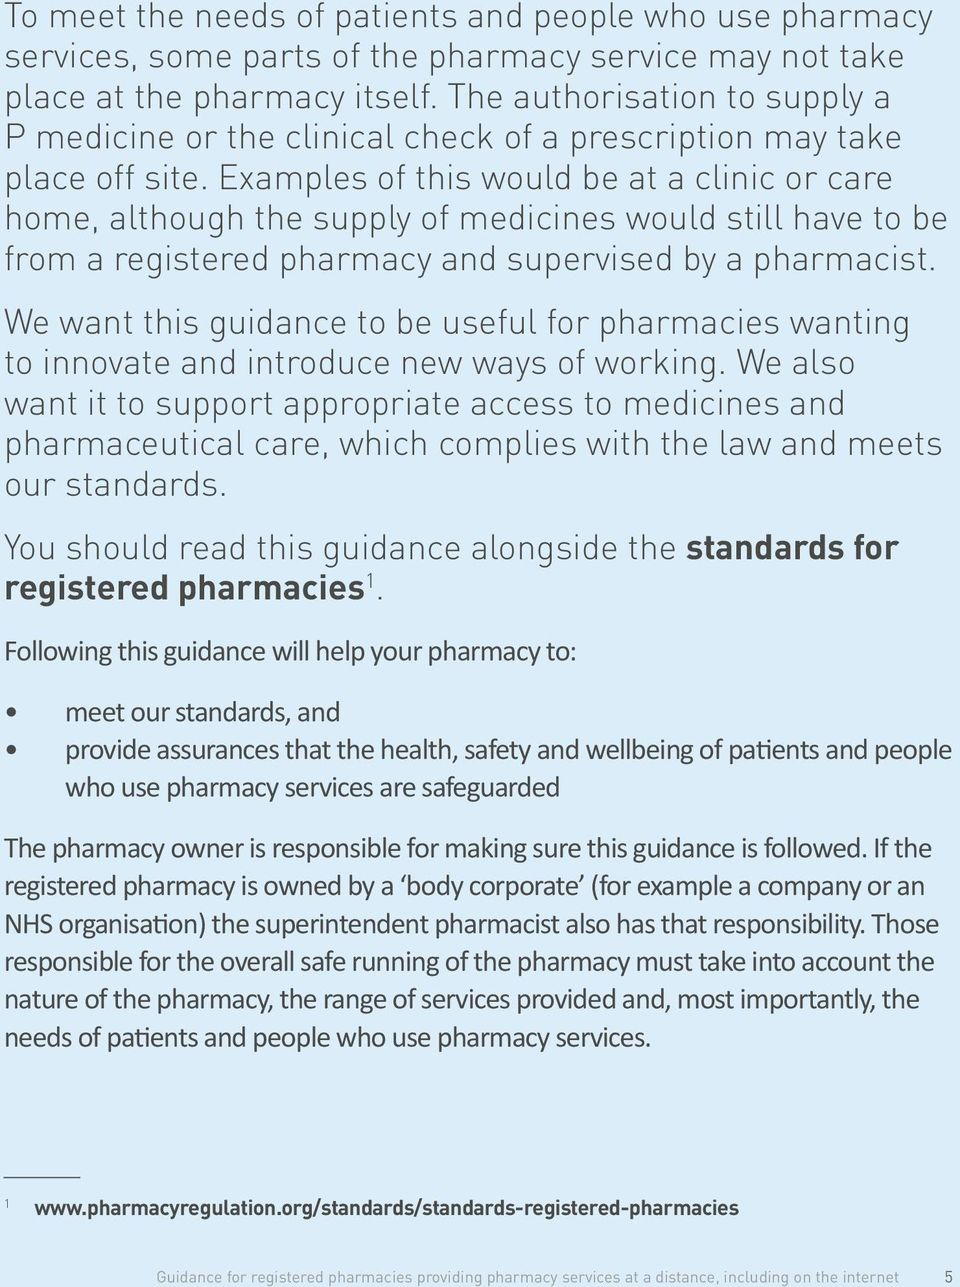 Examples of this would be at a clinic or care home, although the supply of medicines would still have to be from a registered pharmacy and supervised by a pharmacist.